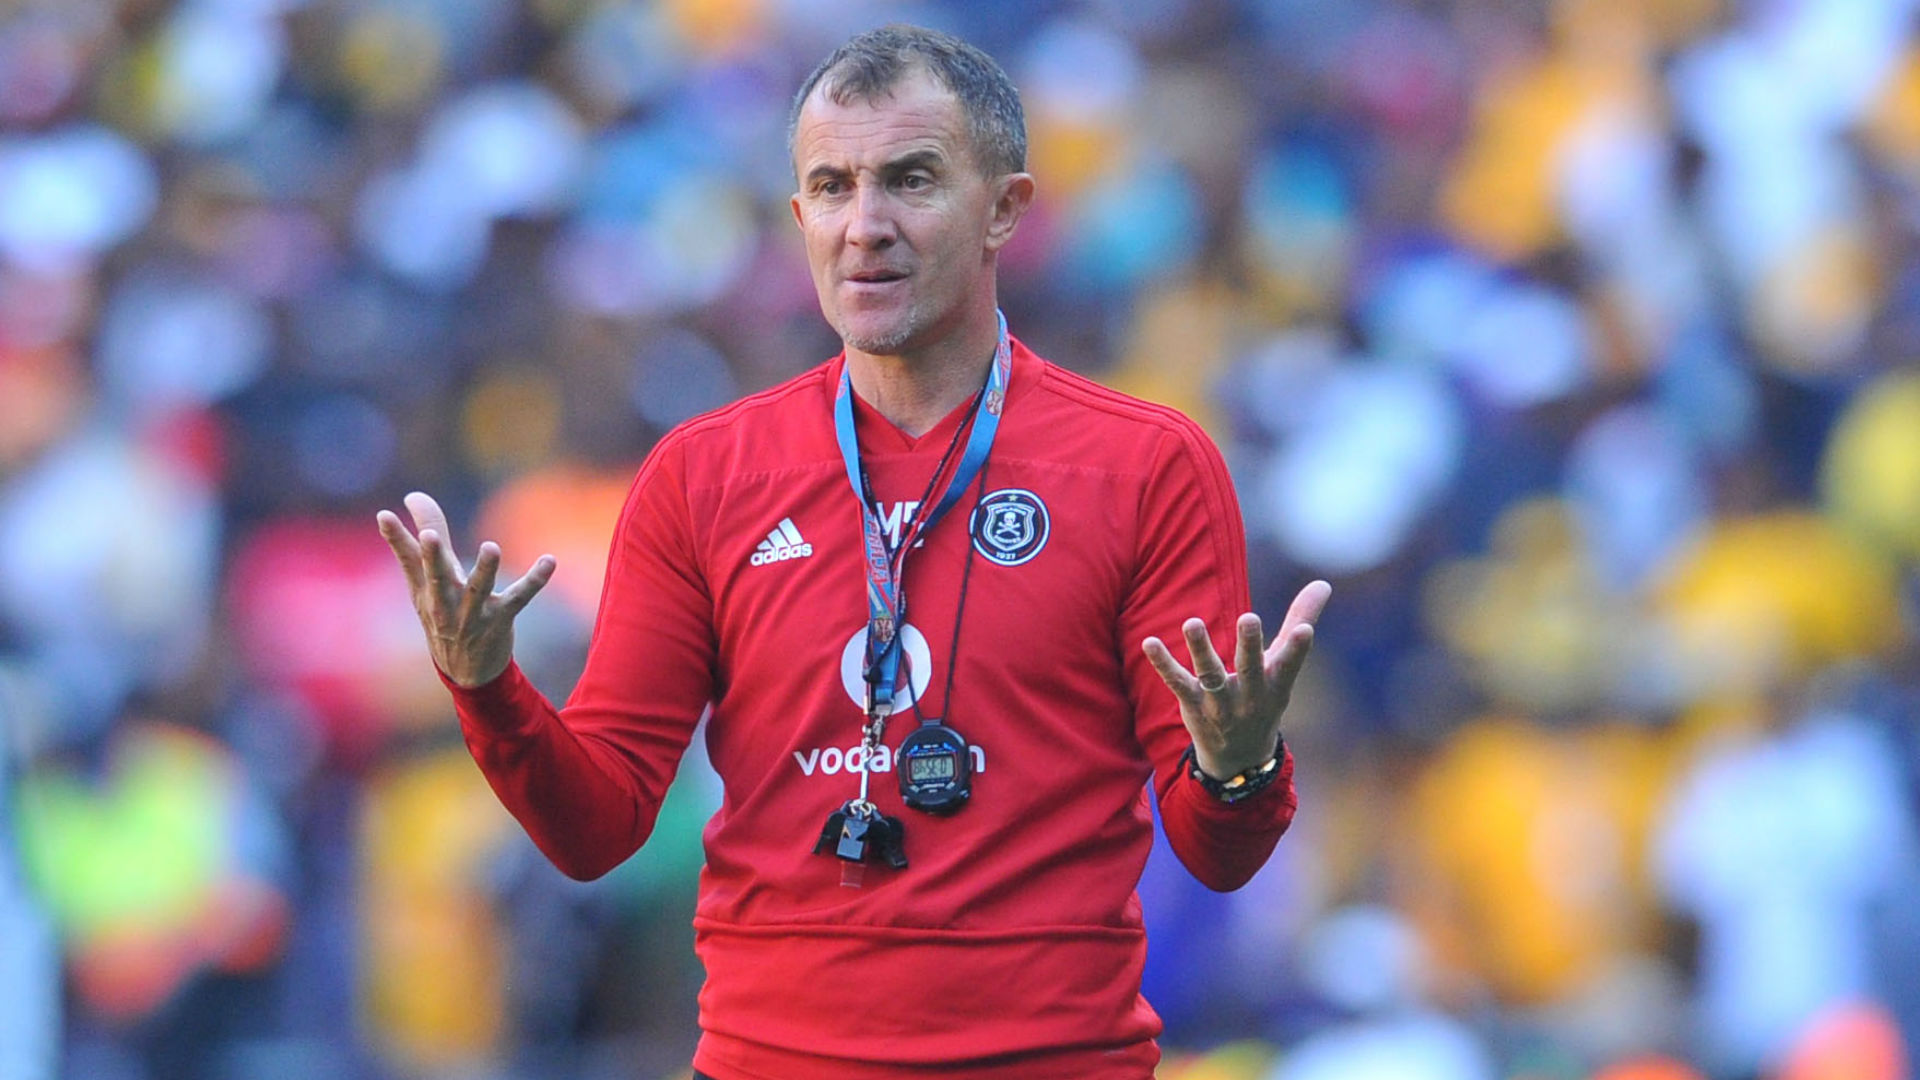 Milutin Sredojevic, Orlando Pirates, November 2018